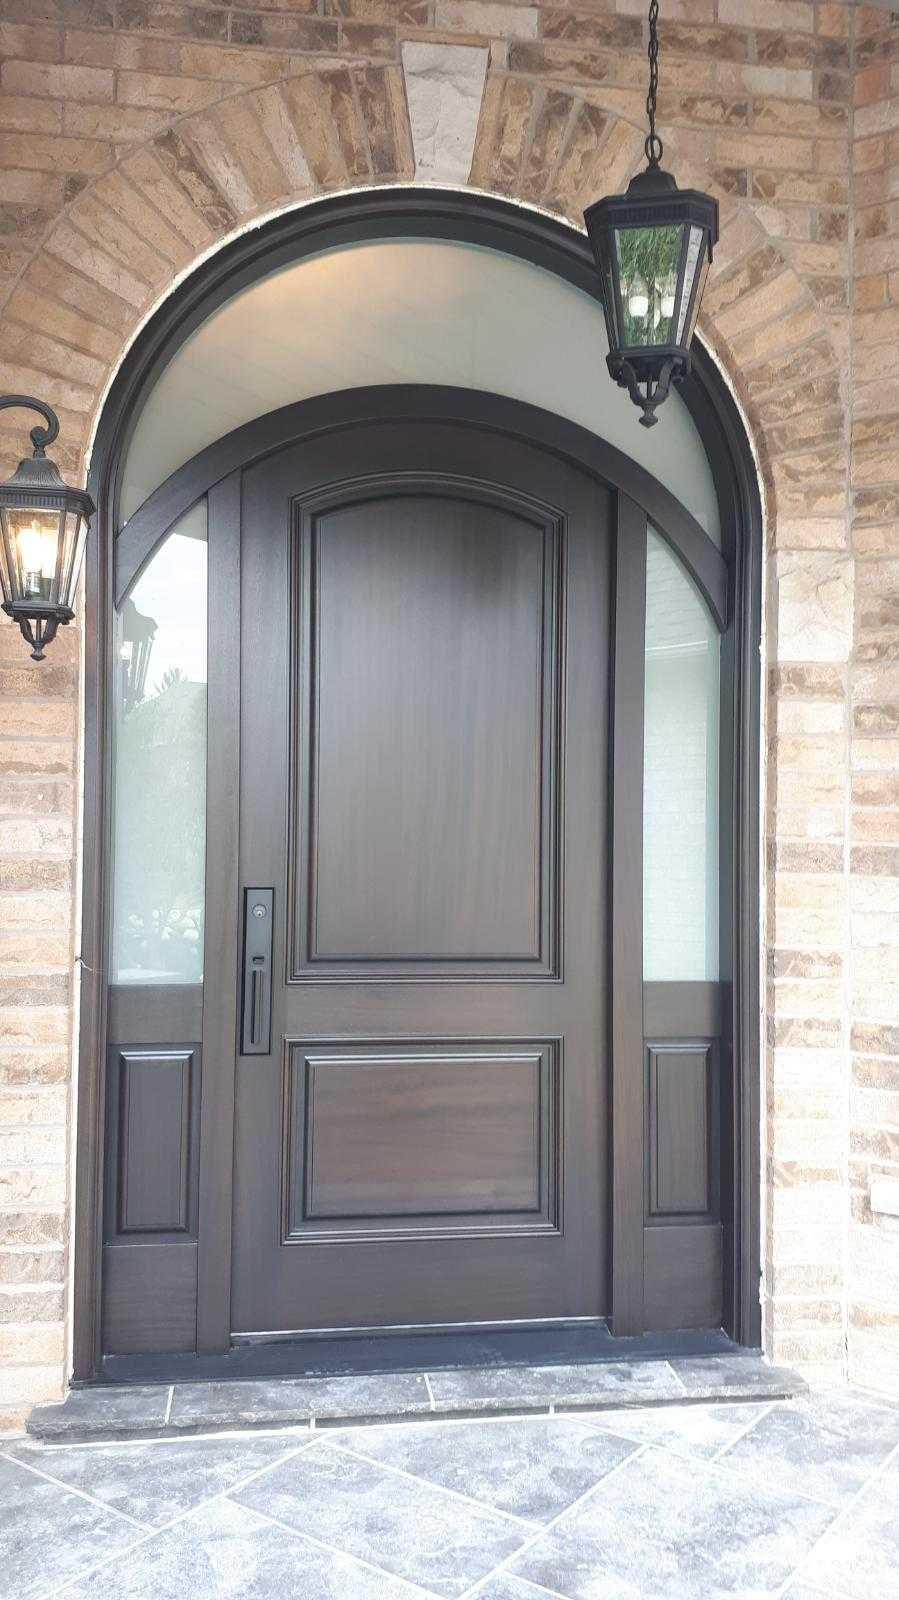 """""""Optimism is the faith that leads to achievement"""" #SolidWood, #Doors, #Wood #Mahogany, #CustomMadeDoors, #EntryDoors.#DistinctiveLook, #FityourHome Made by #NorthwoodDoorsInc. Your best value and quality, #HandCraftedDoors. Every door #Manifactured by us has our corporate stamp - a testament to our dedication and passion in #Woodwork. Let #NorthwoodDoorsInc. add to your home's #CurbAppeal by enhancing the quality and beauty of your #EntryDoors. Visit our #Showroom to envision how one of our many #doors on display might look like at your #Home. Contact us today Tel. 416-253-2034, info@northwooddoors.com, www.northwooddoor.com — in Toronto, Ontario"""